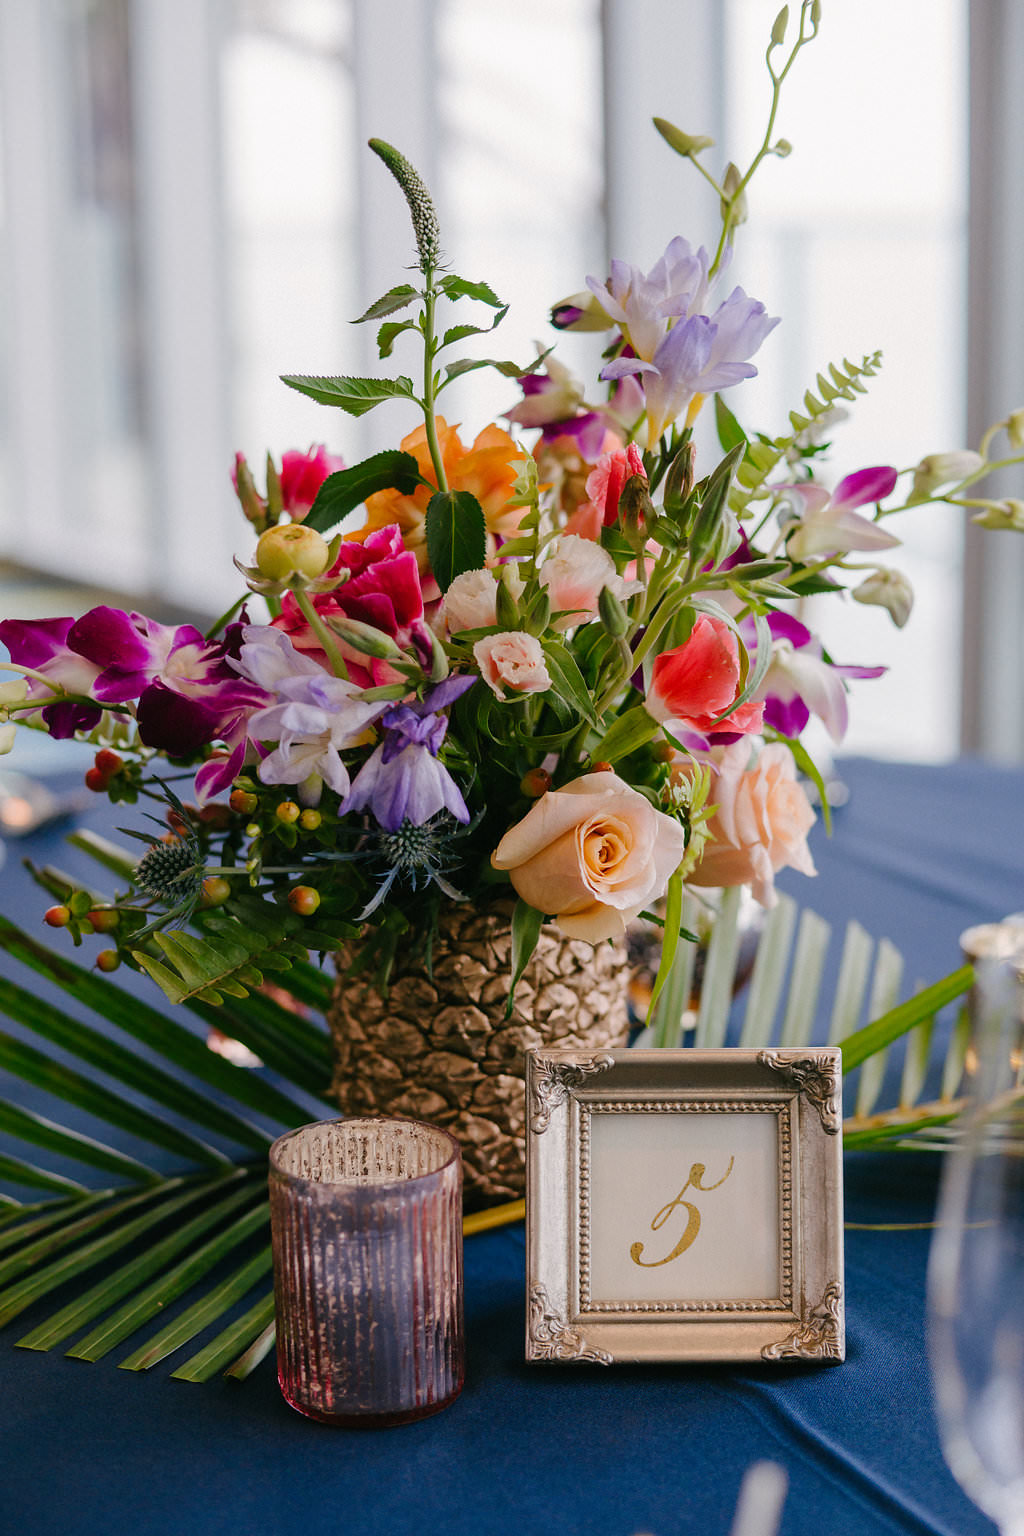 Hotel Ballroom Wedding Reception Decor, Tropical Floral Bouquet in Gold Pineapple, Pink, Purple, Peach, White and Greenery Flowers, Table Number in Gold Frame, Candle Votive, Palm Leaf Branch on Navy Blue Linen | Tampa Bay Photographer Grind and Press | Special Moments Event Planning